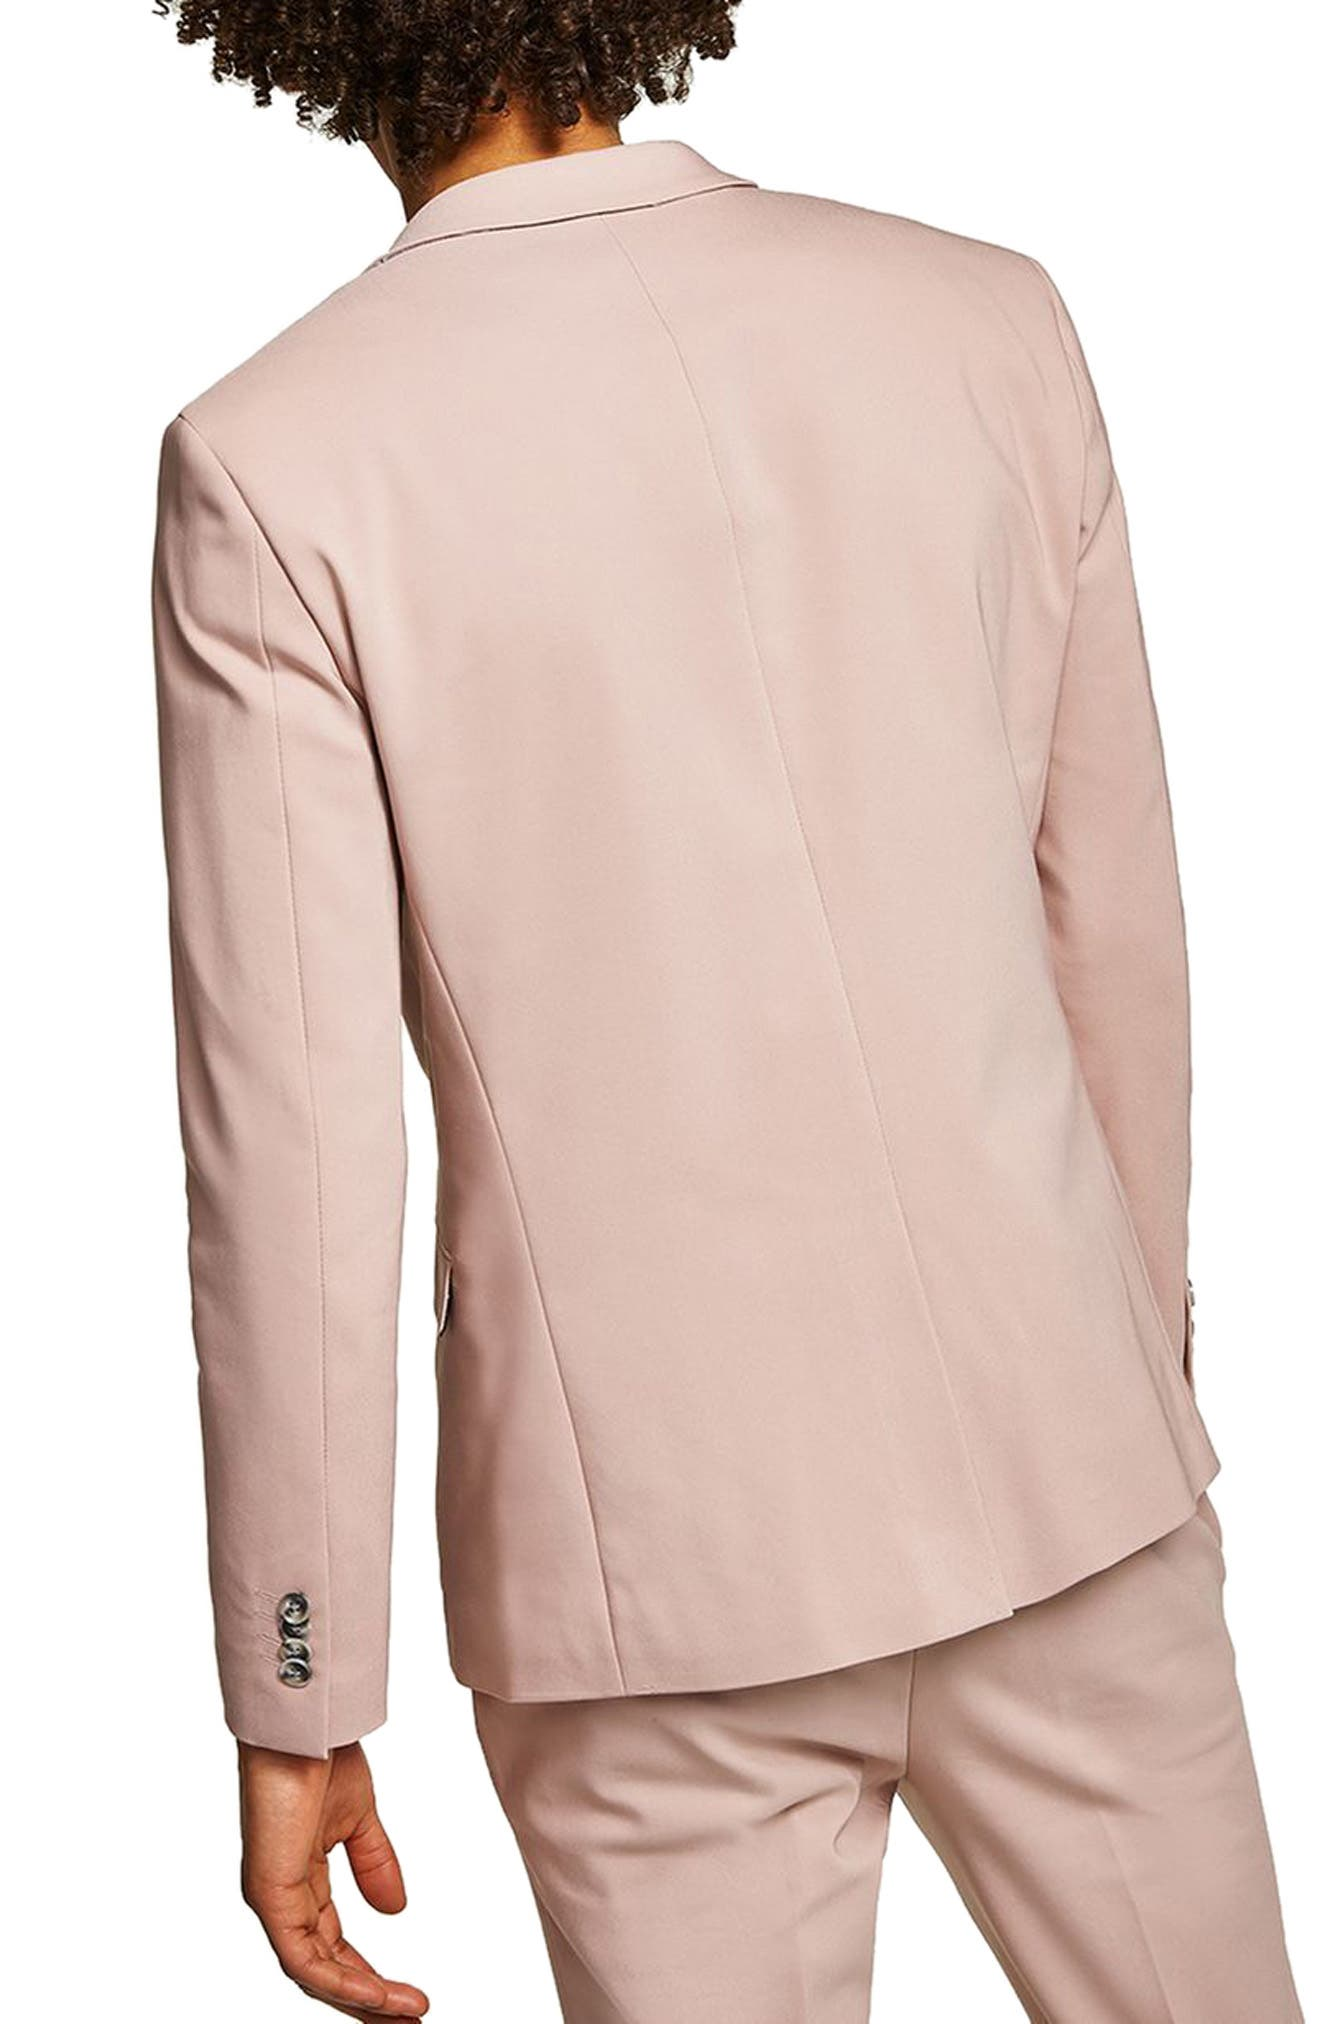 Skinny Fit Suit Jacket,                             Alternate thumbnail 3, color,                             Pink Multi